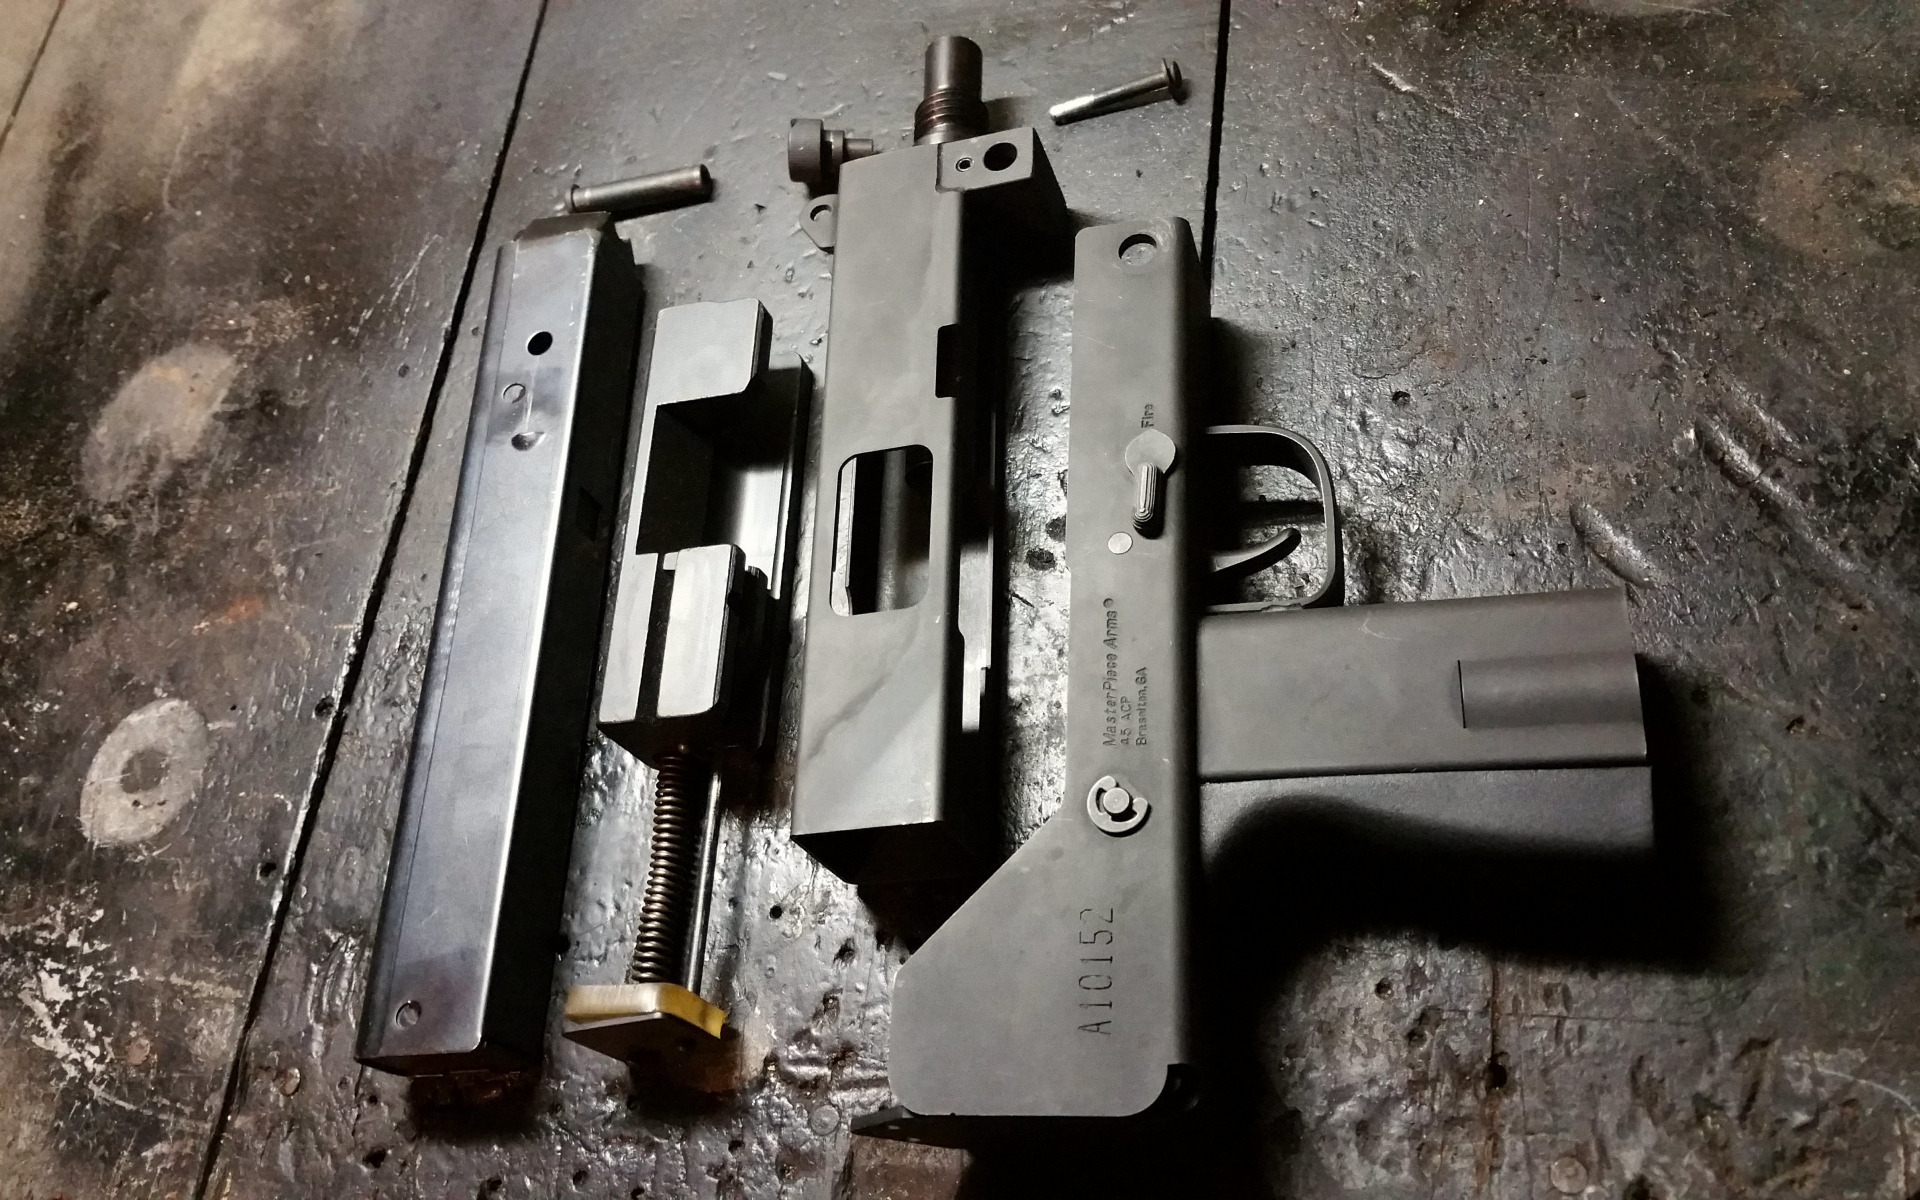 Download wallpaper details, compact, the gun, disassembled